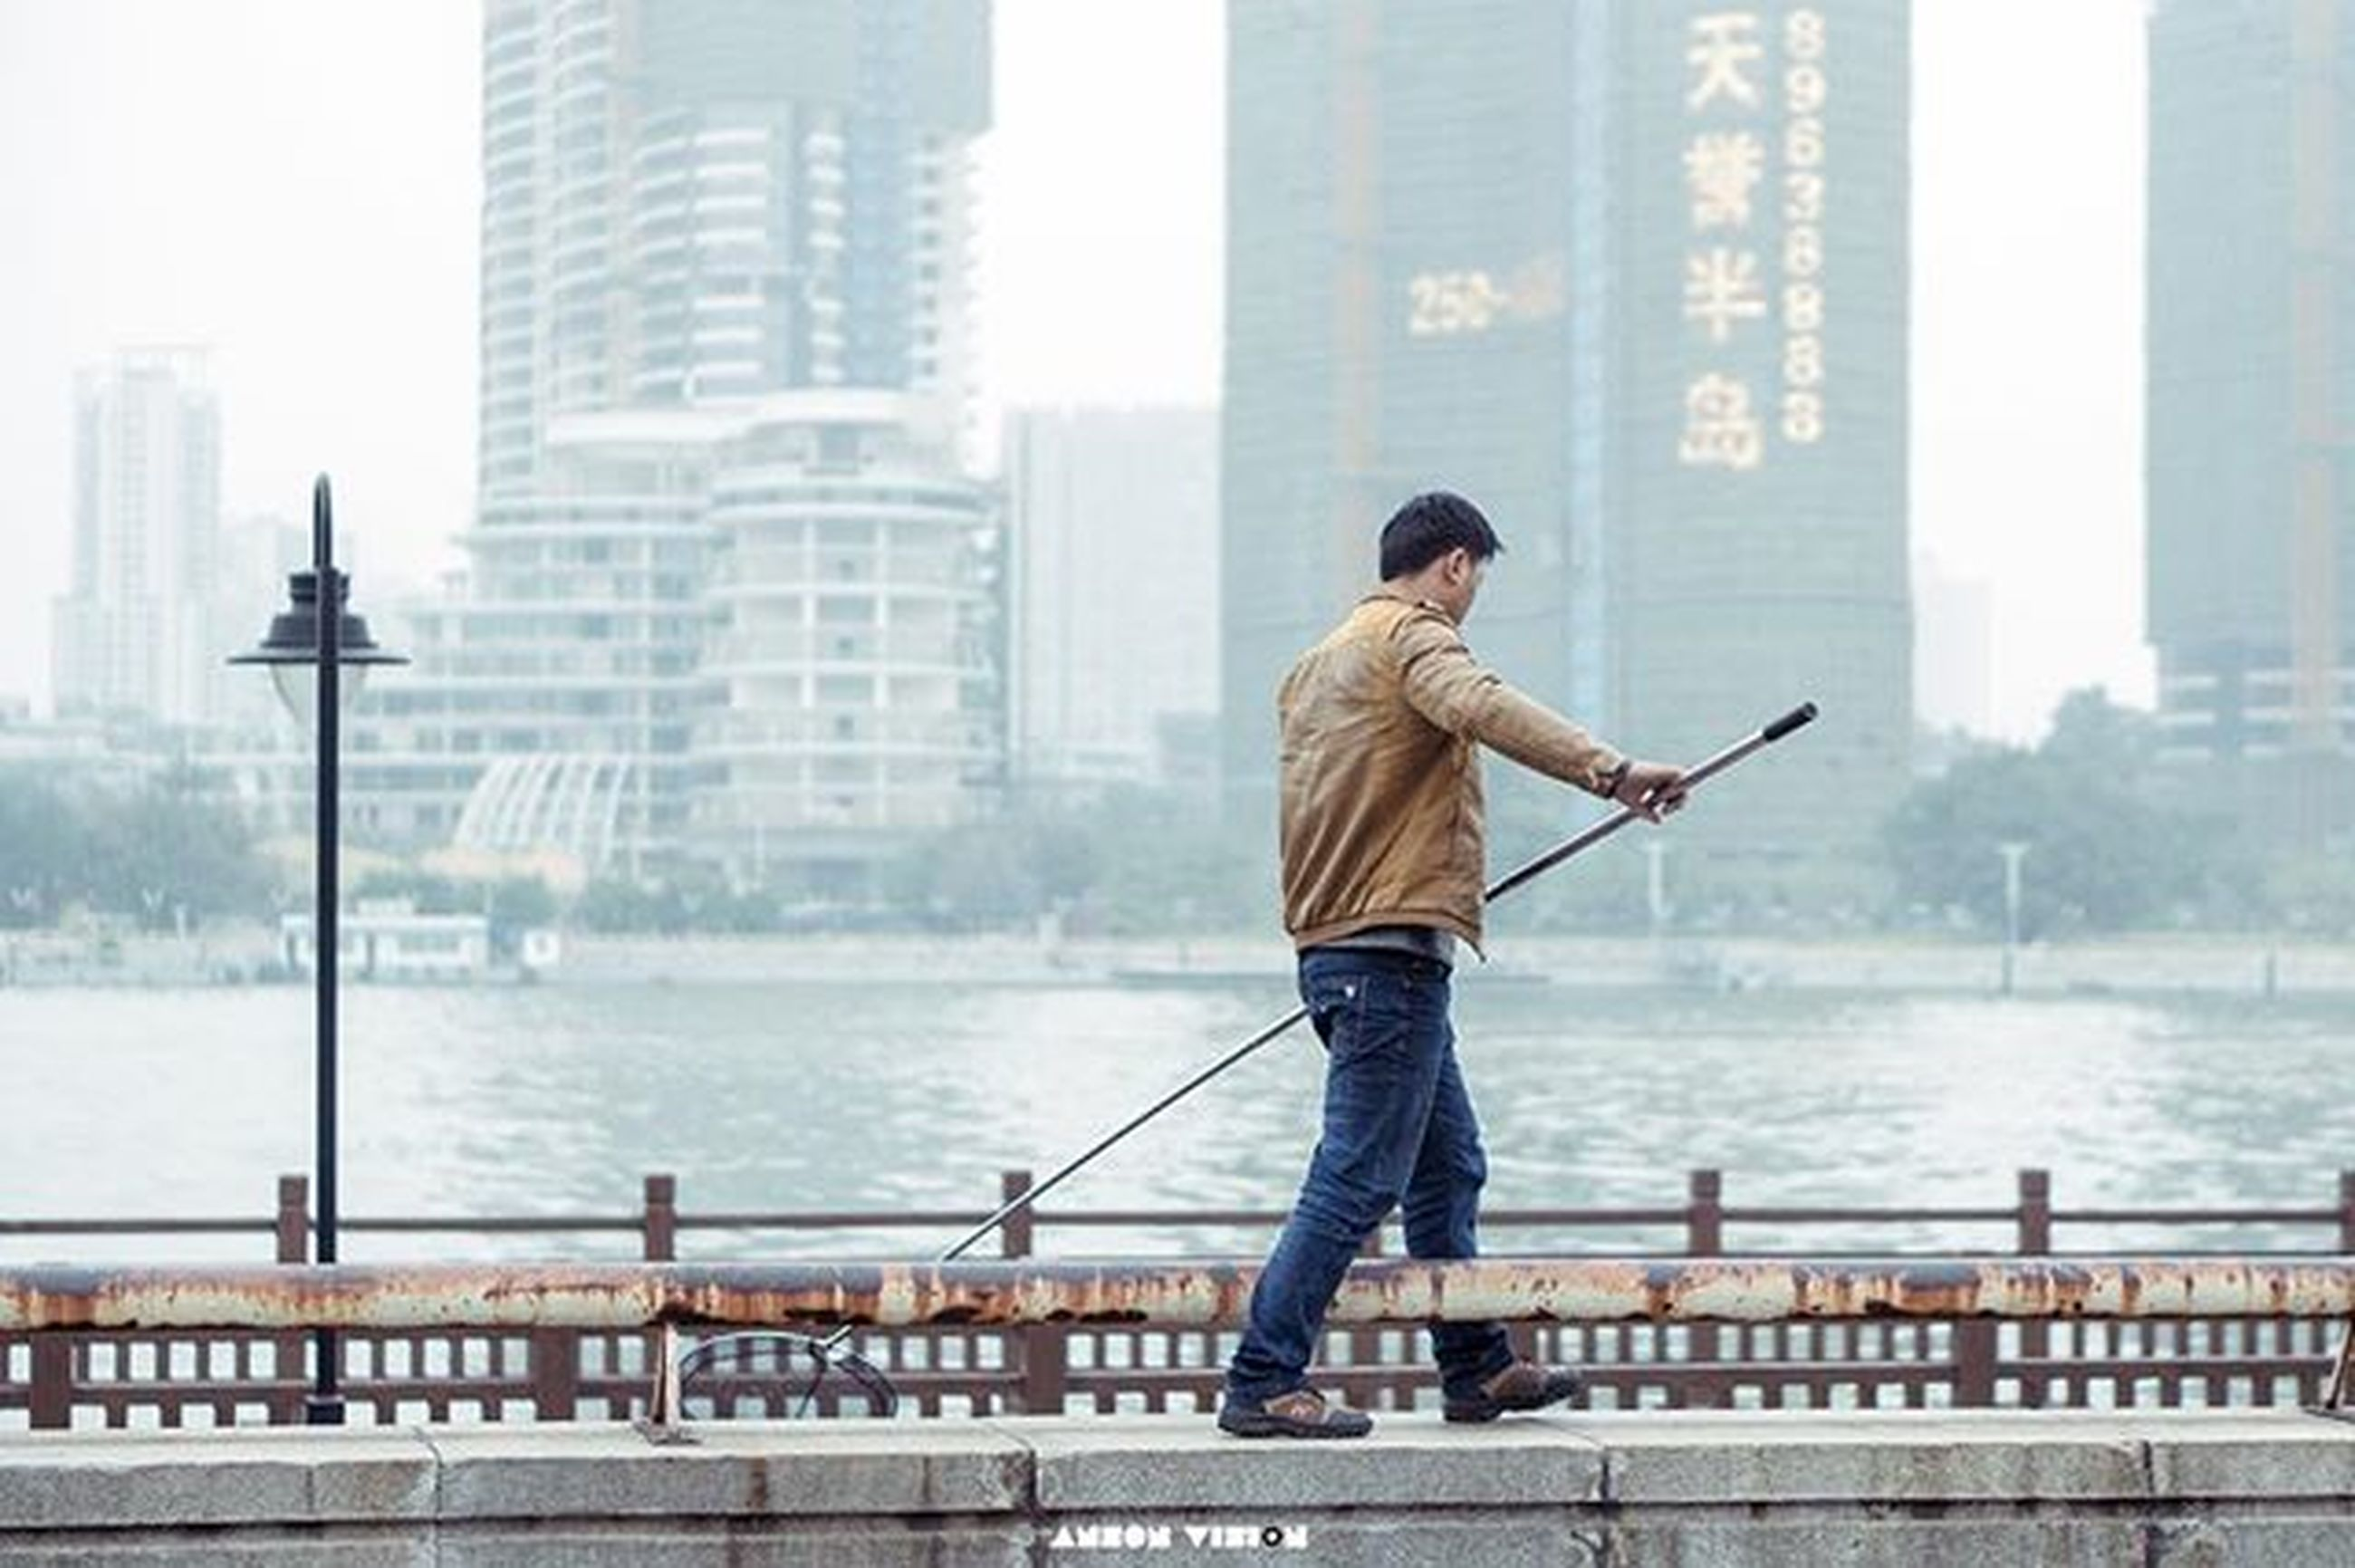 water, rear view, full length, built structure, standing, building exterior, lifestyles, architecture, city, railing, leisure activity, sea, casual clothing, men, three quarter length, river, city life, sky